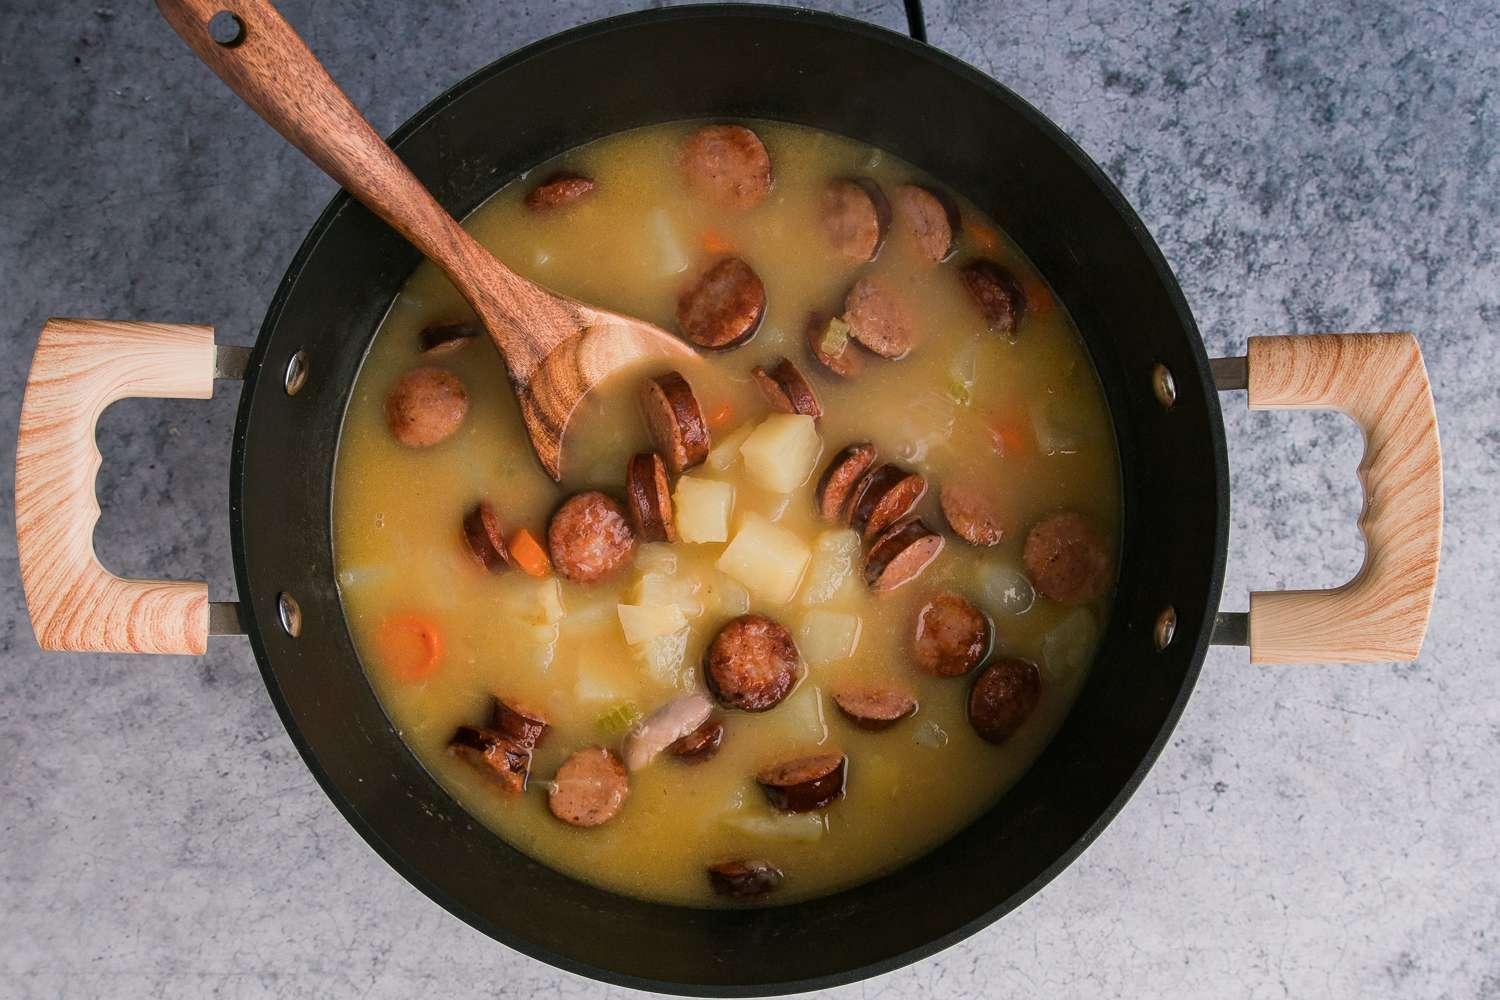 Add the sausage mixture to the simmering stew